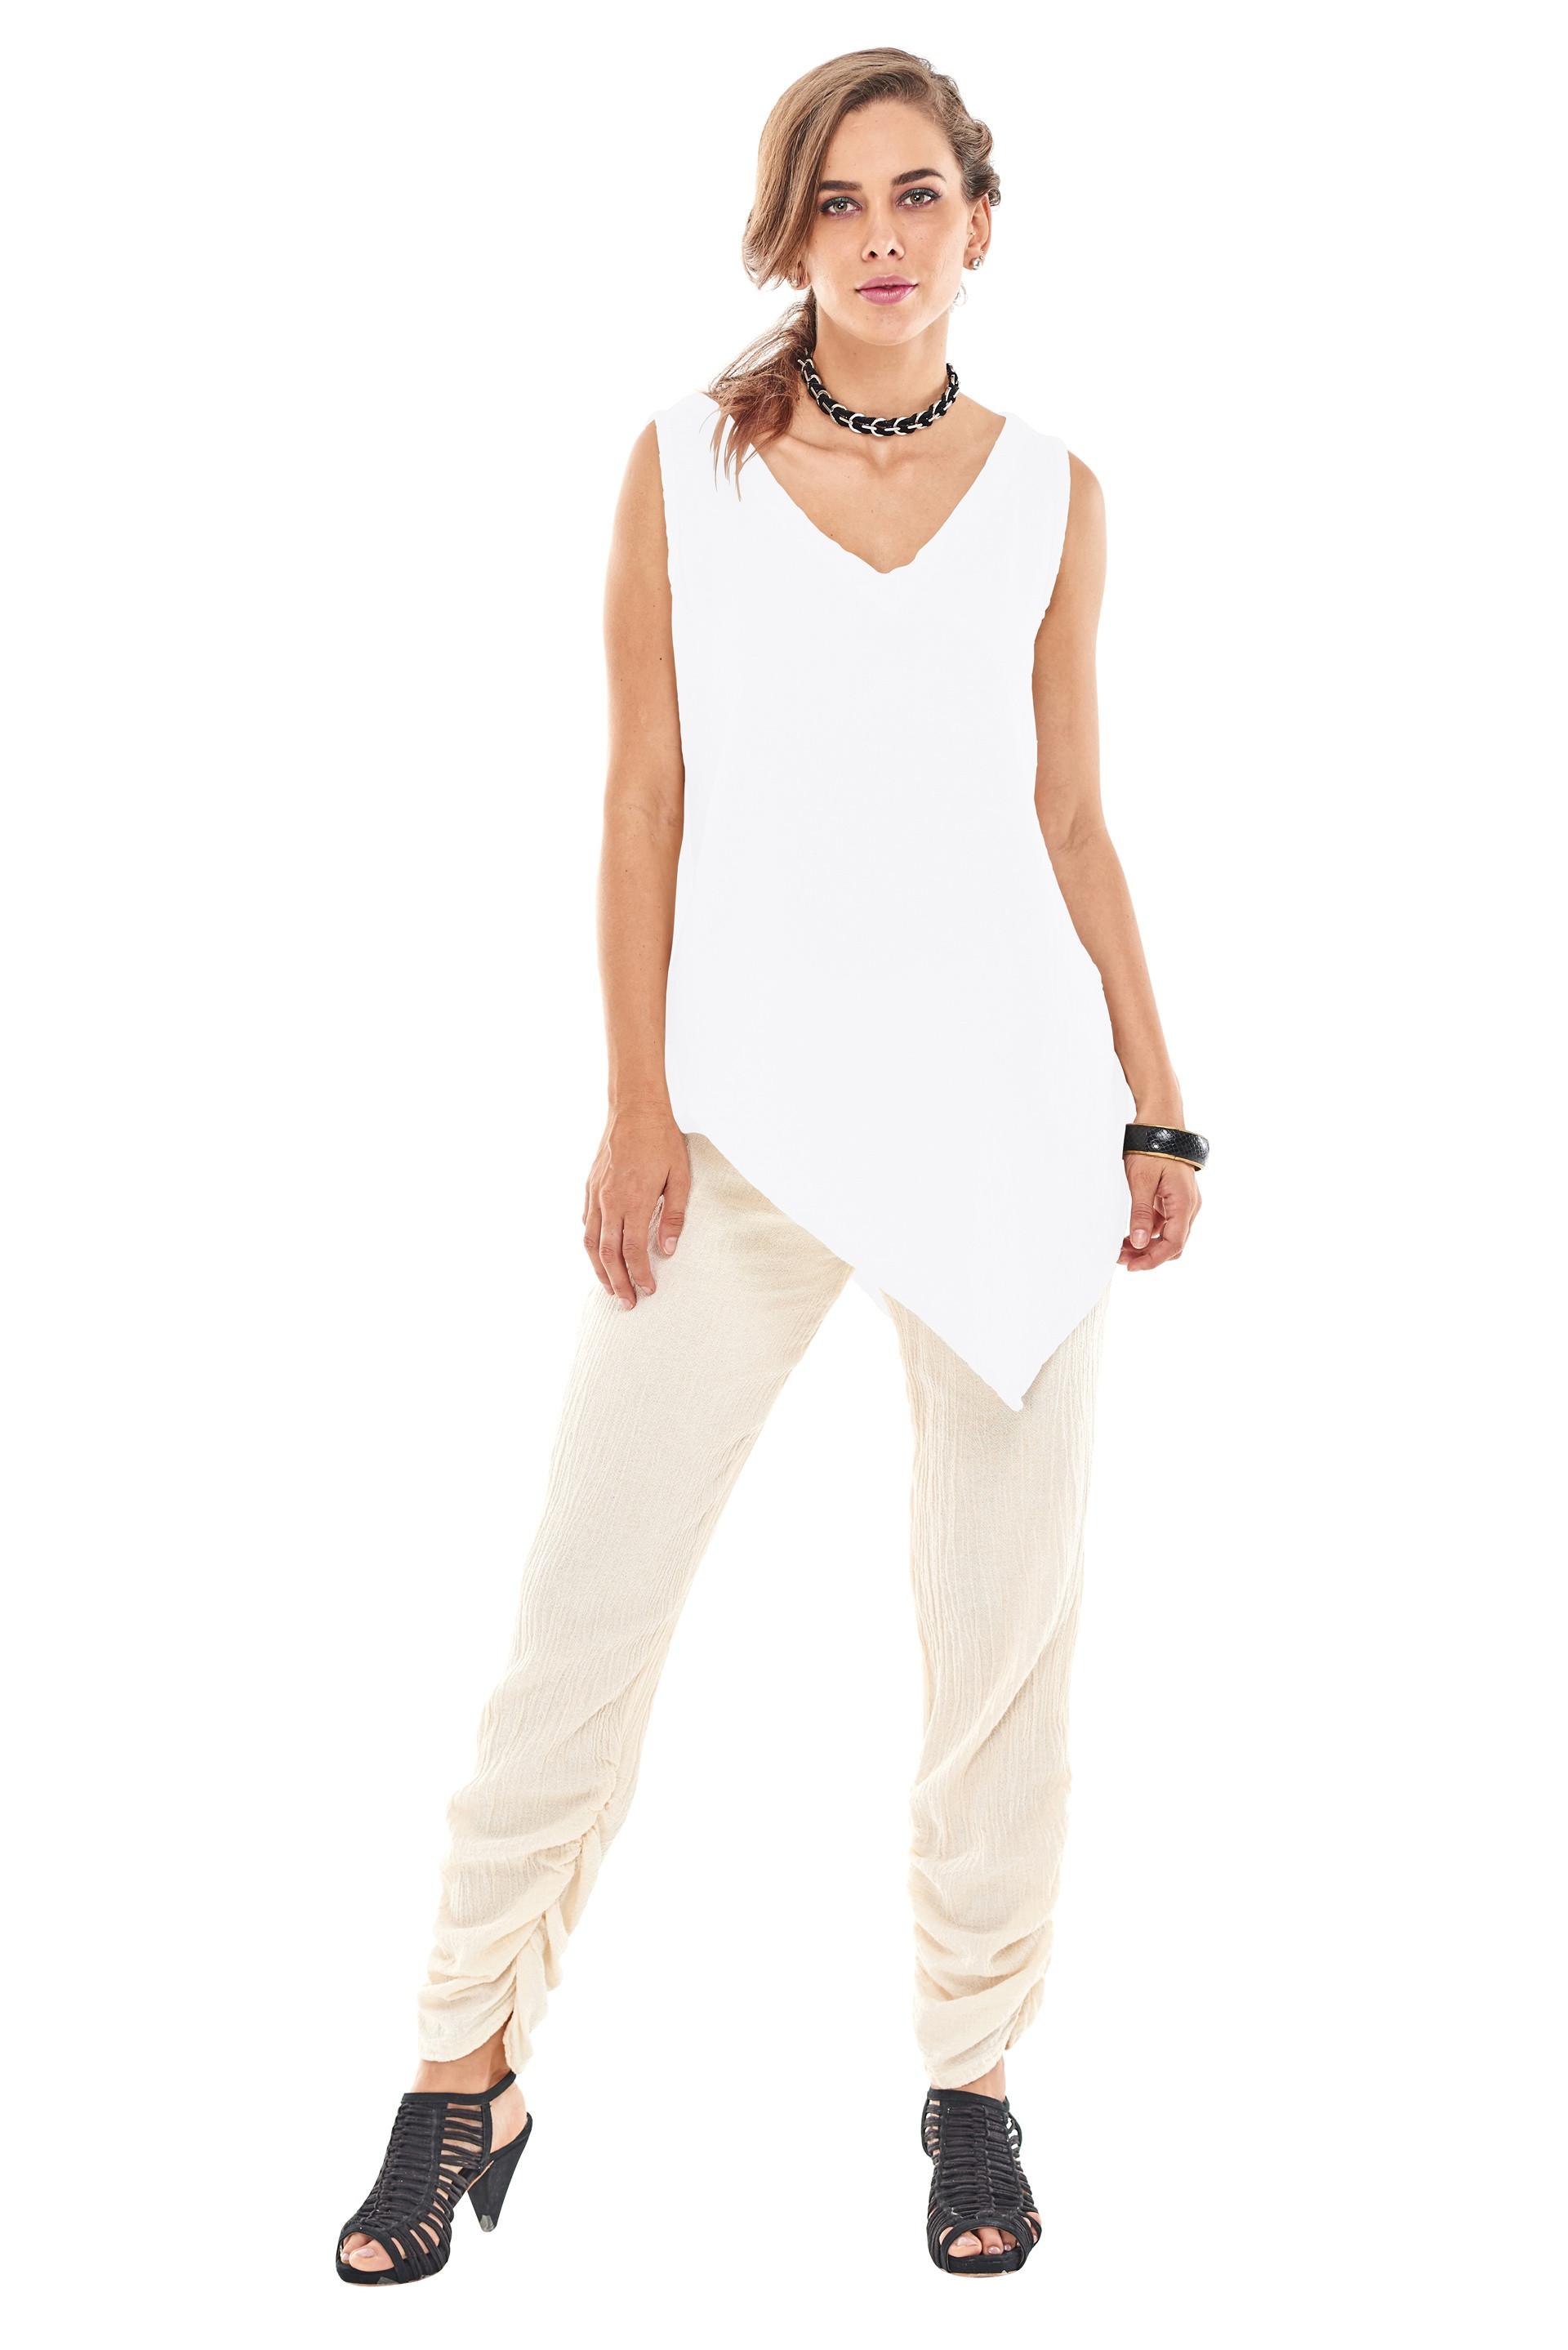 OMG - A v-neck cotton gauze sleeveless top with an asymmetrical side point and discreet pocket.